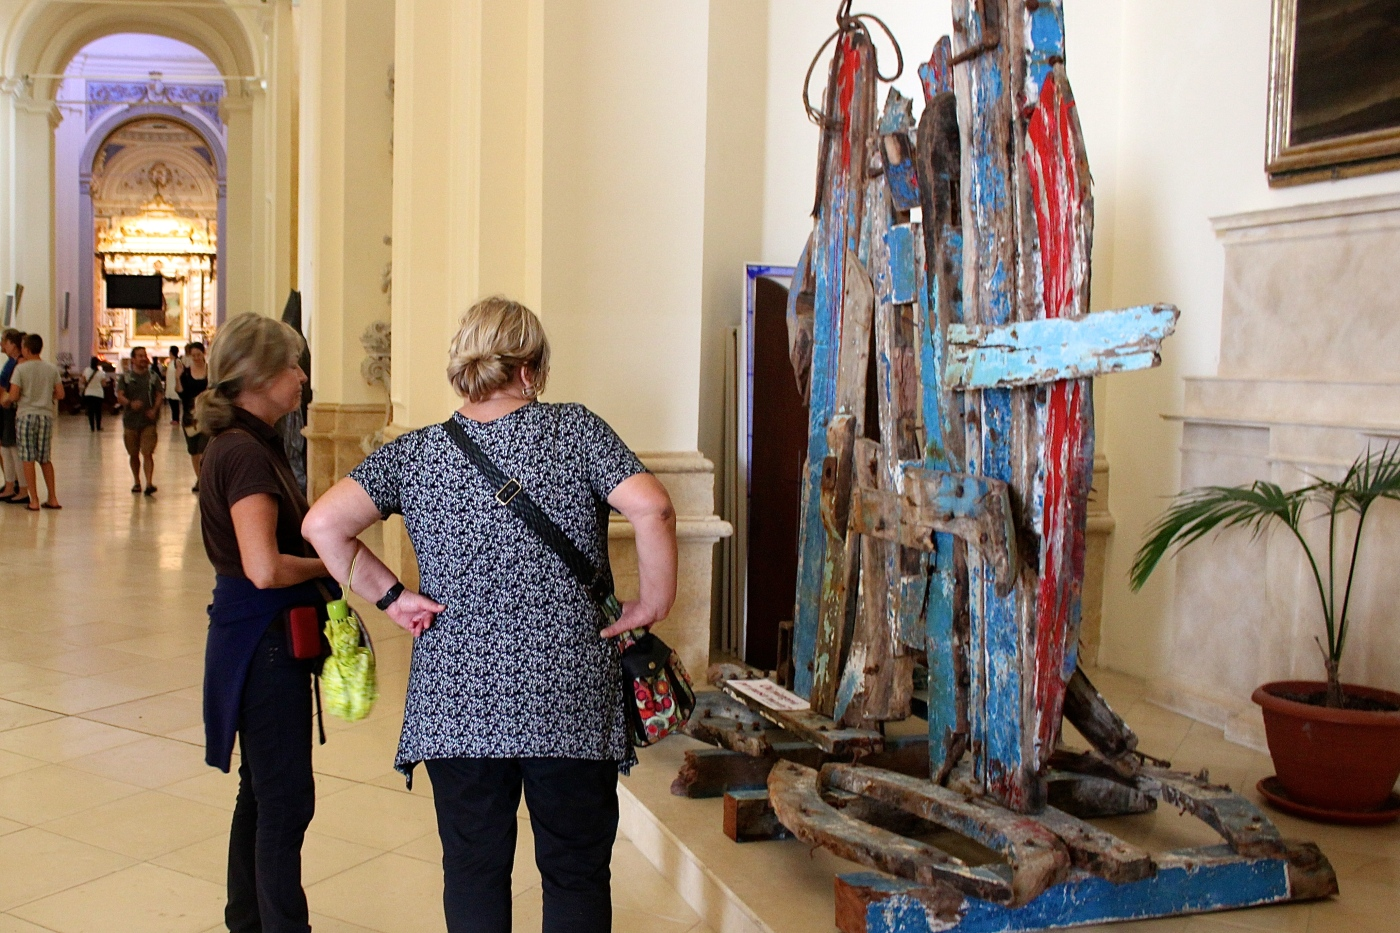 Tourists consider a sculpture made of boards from a migrant boat in a Sicilian cathedral.